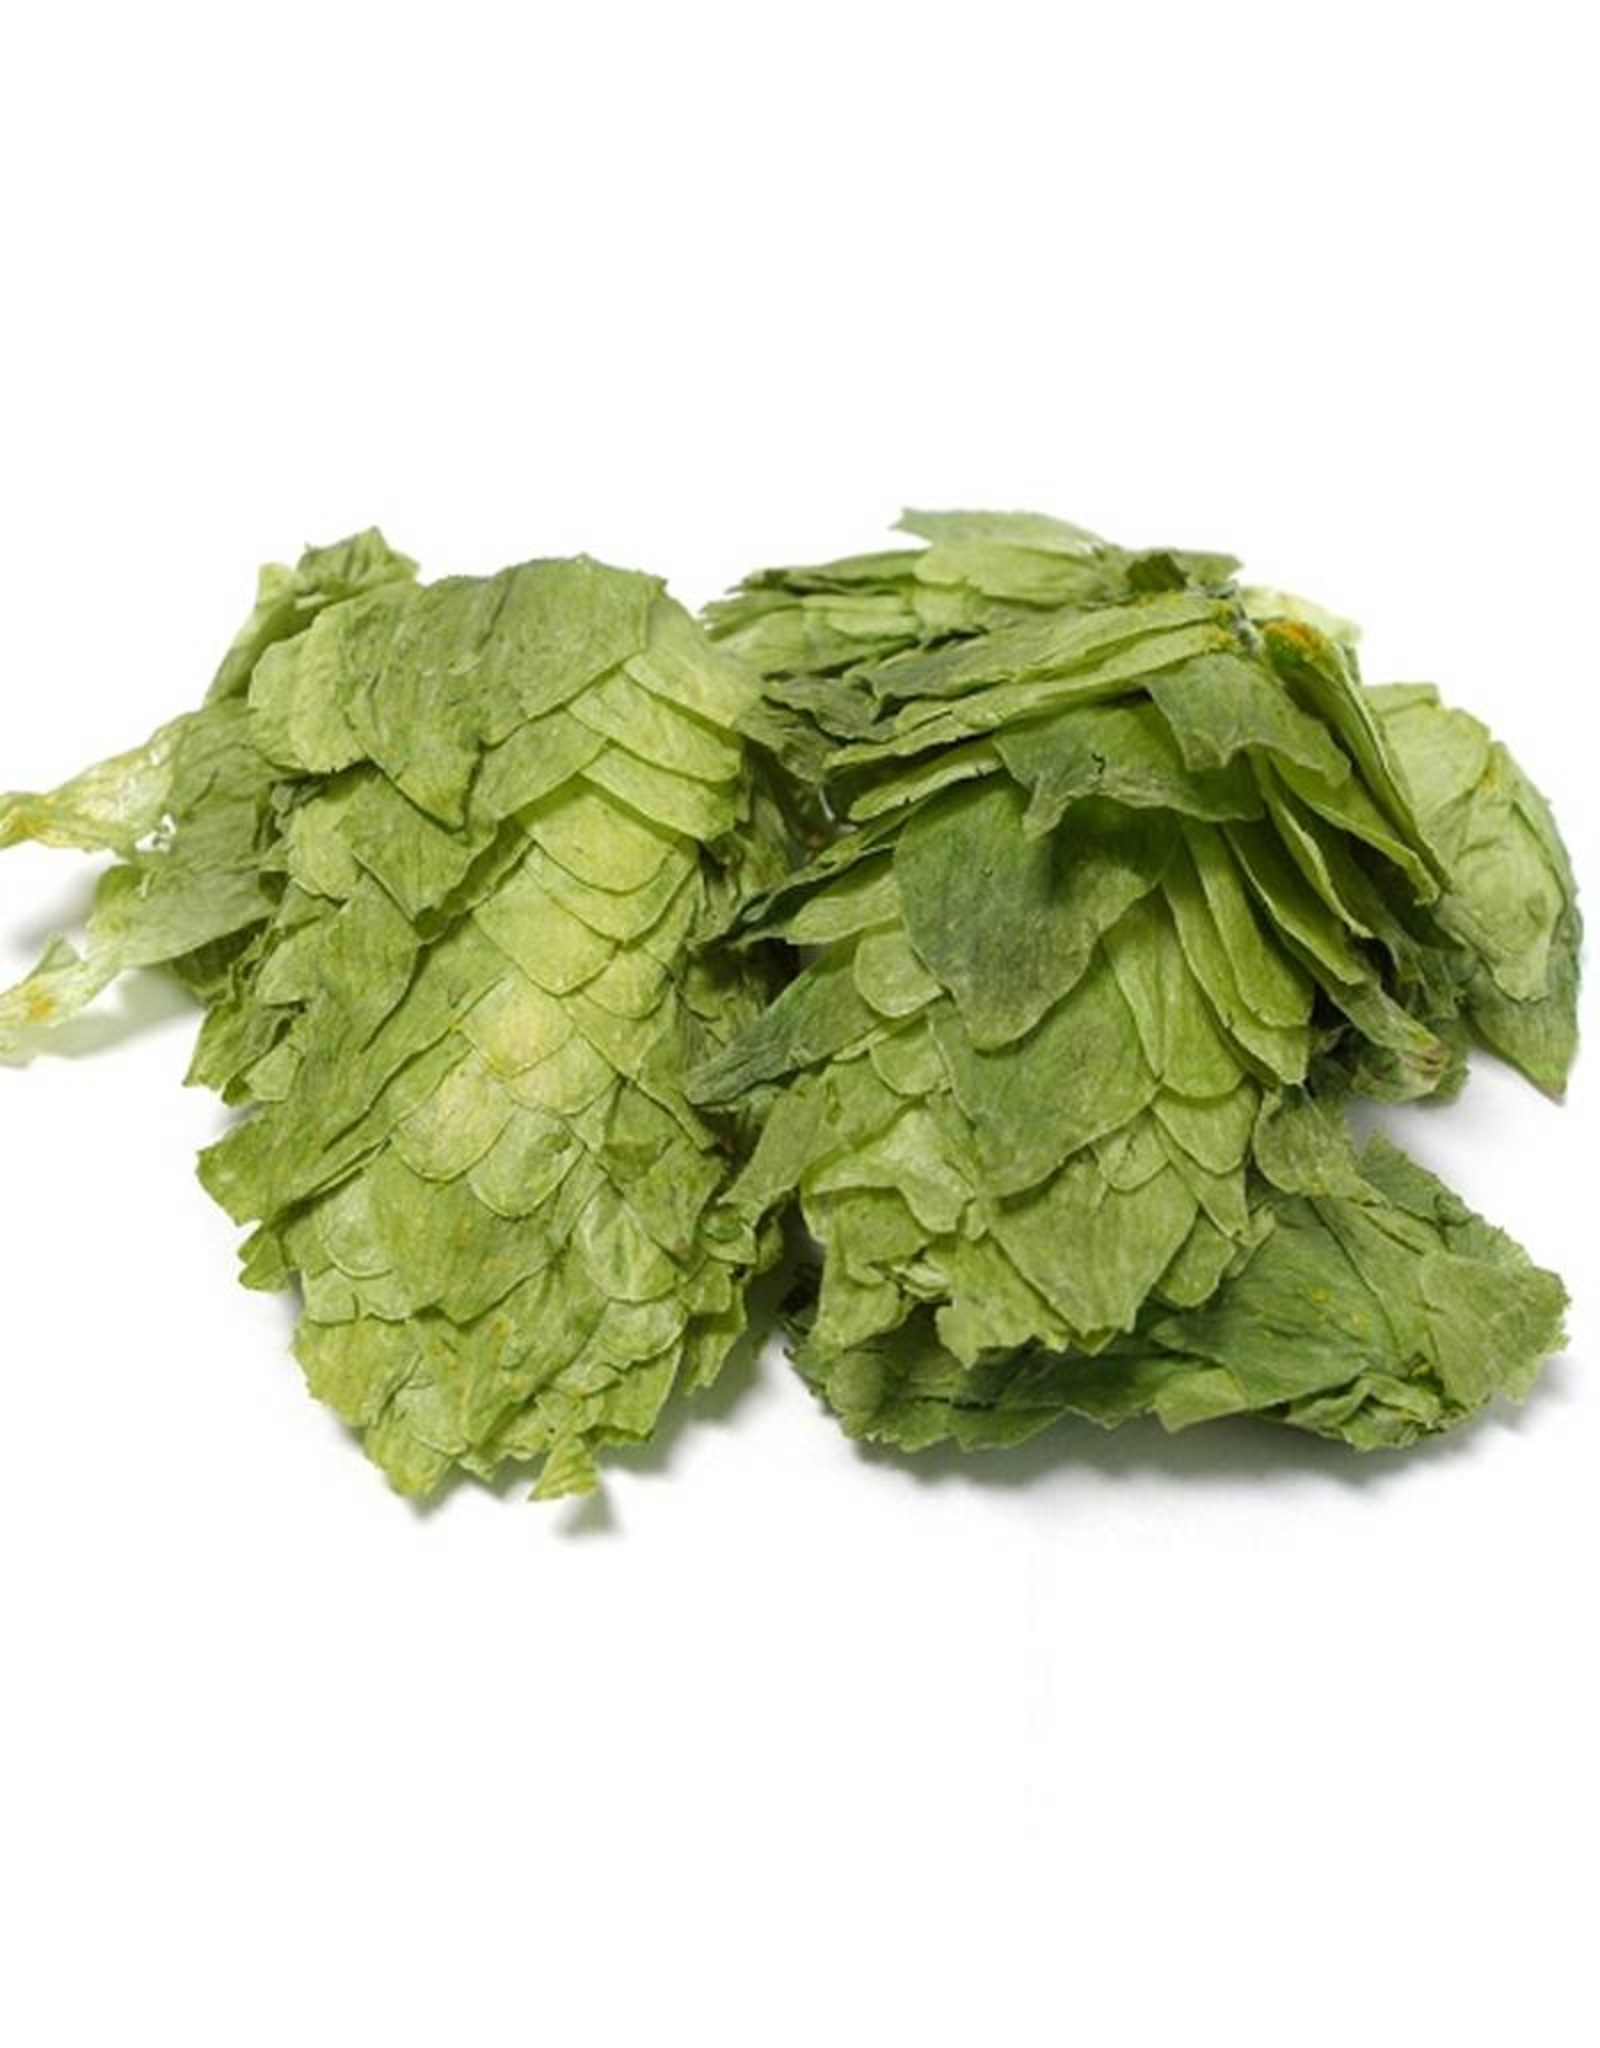 Summit Leaf Hops Alpha (1 oz)